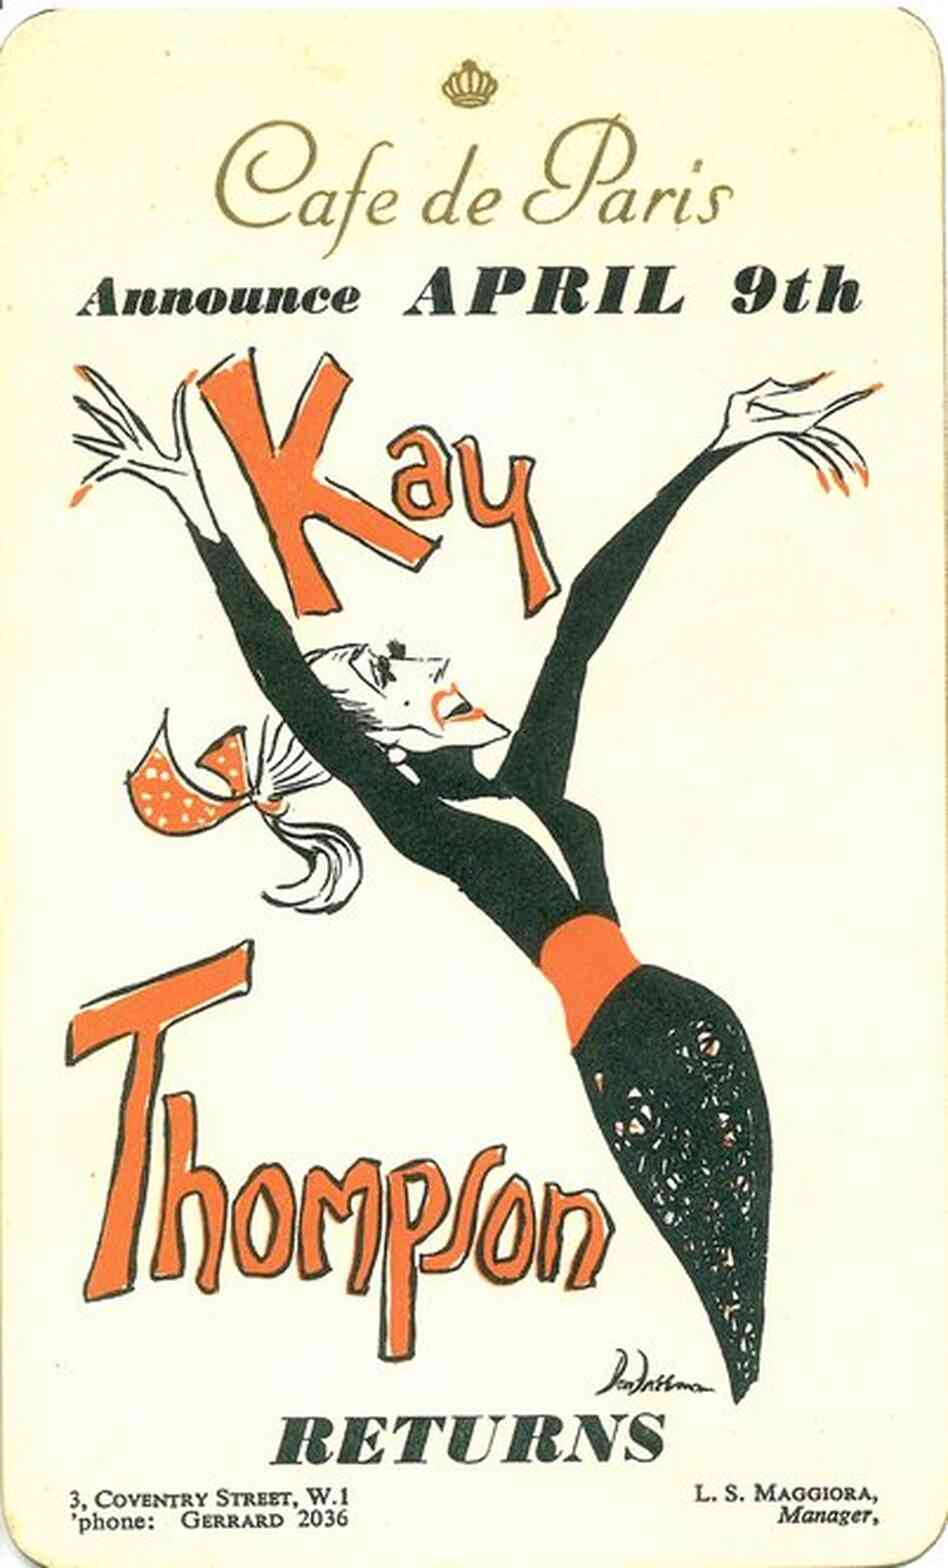 Thompson's advertising card for her engagement at London's Cafe de Paris in 1951.